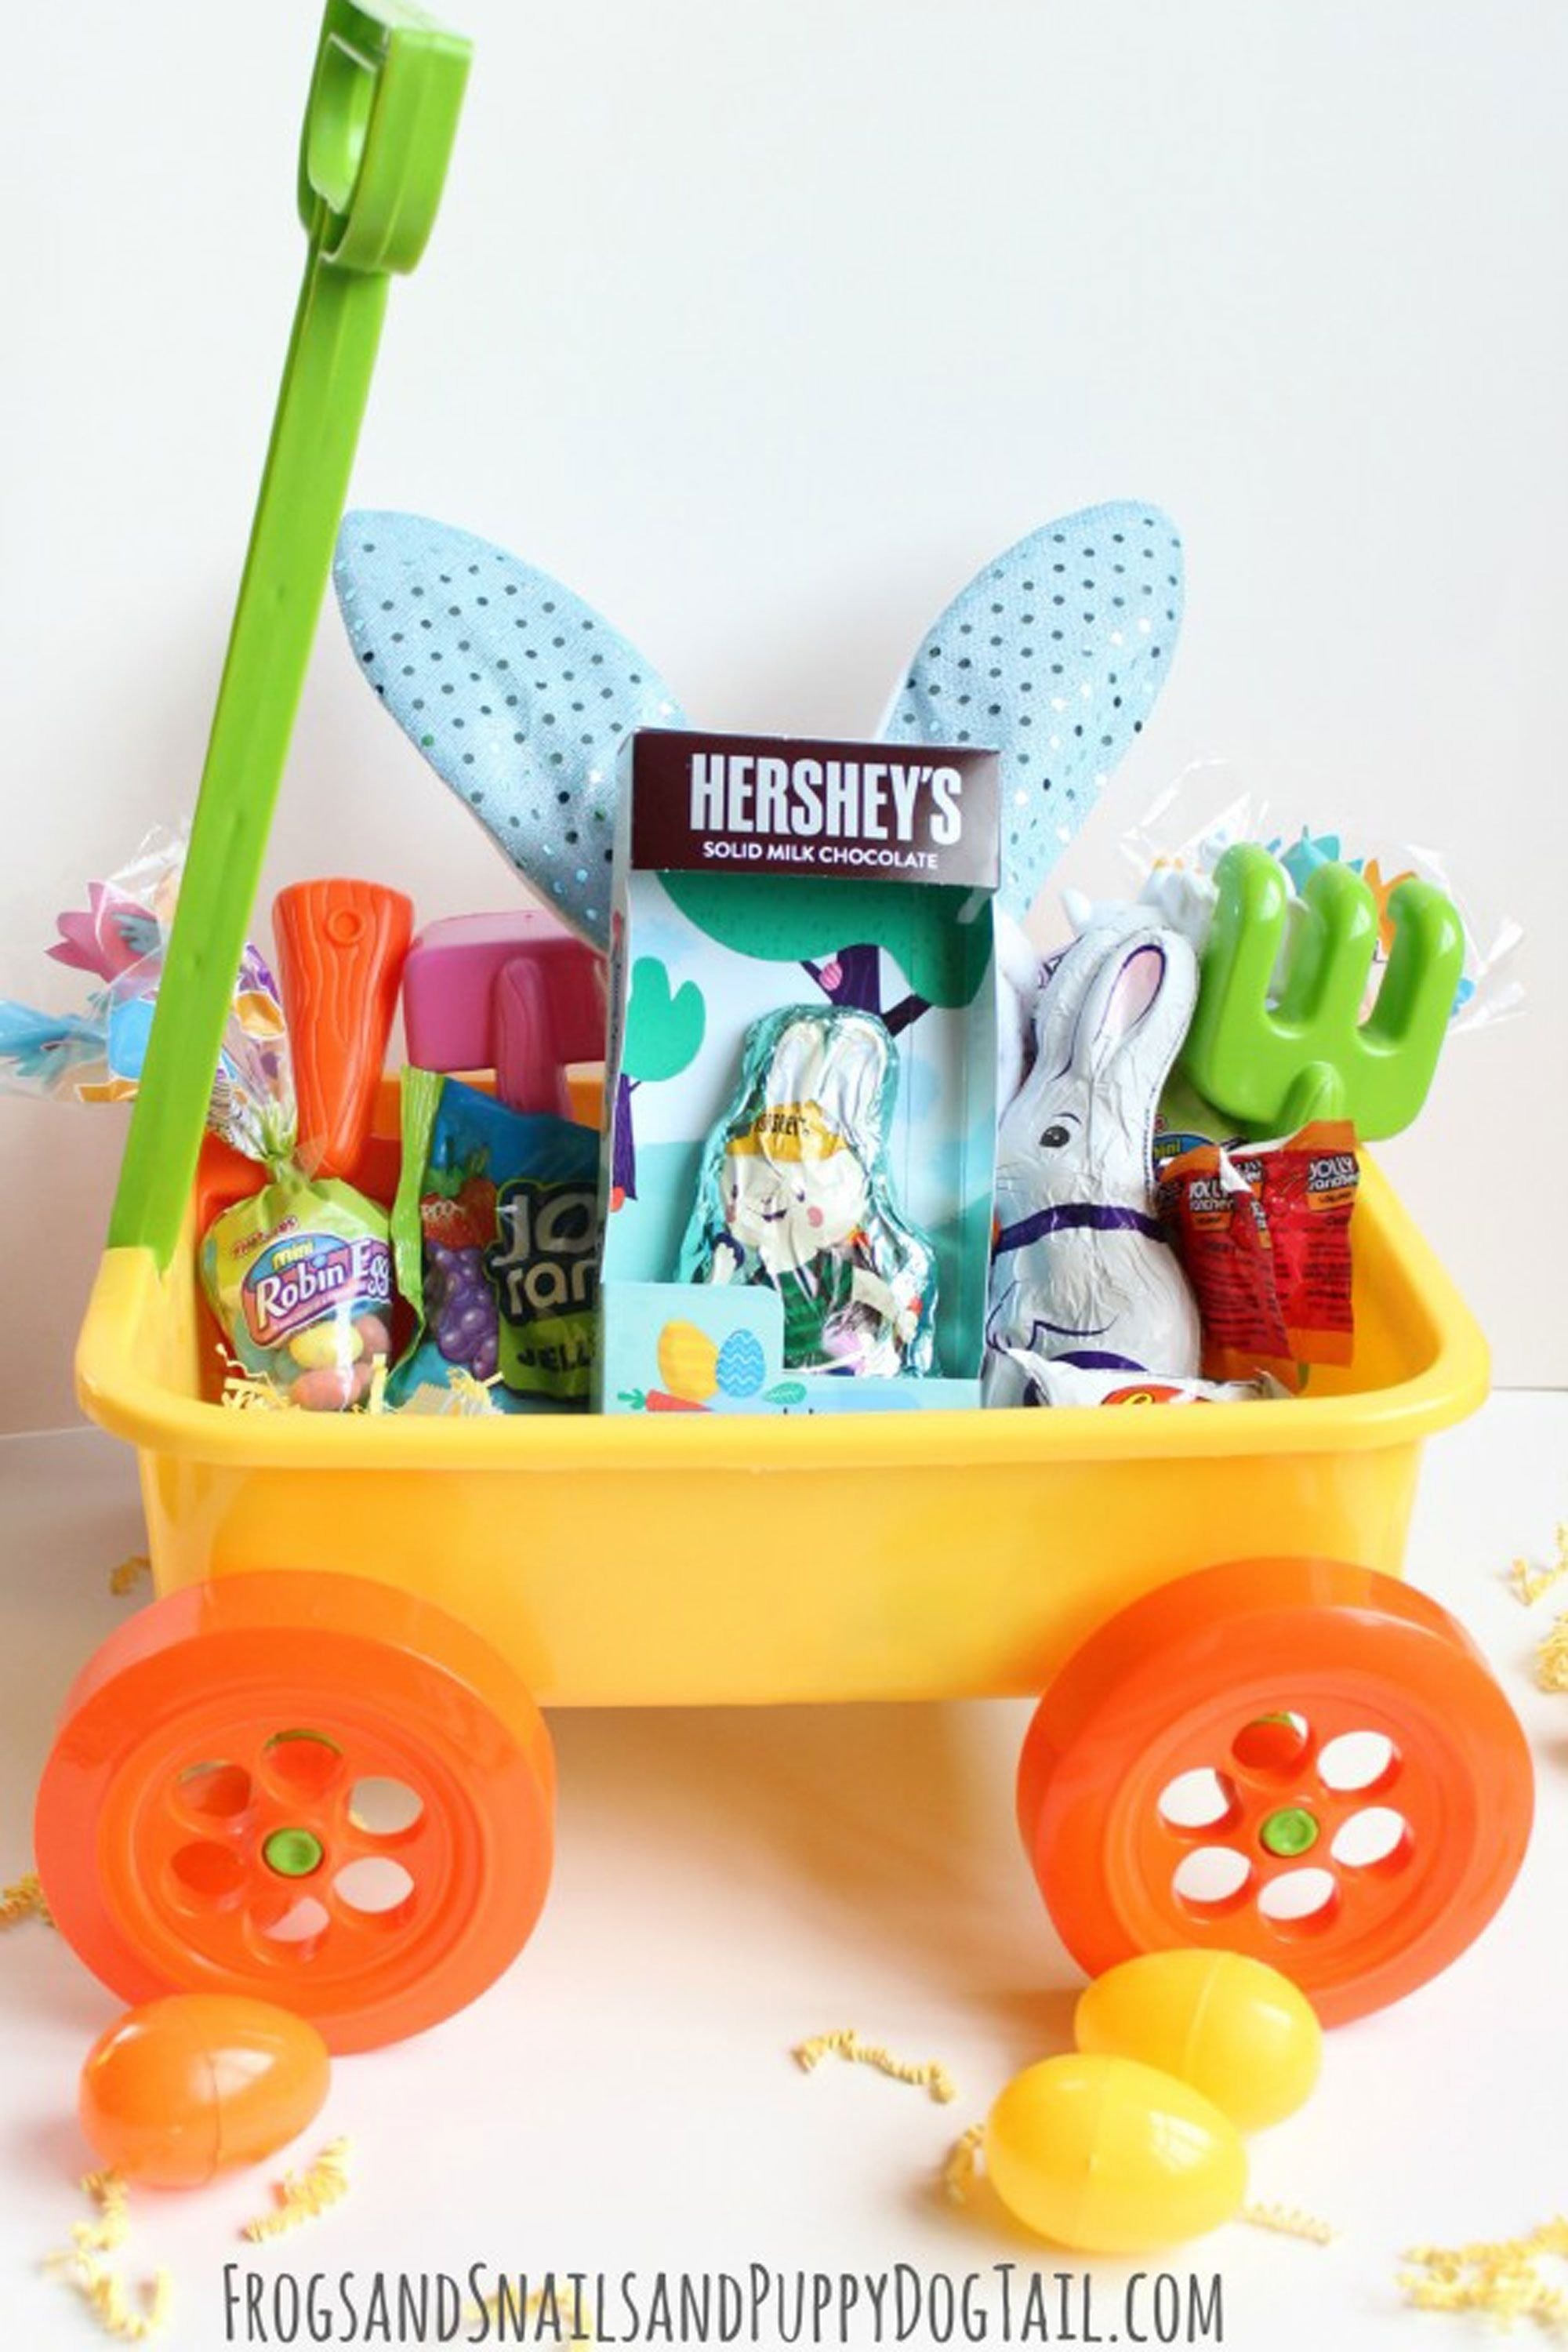 10 Elegant Easter Picture Ideas For Toddlers 16 easter basket ideas for kids best easter gifts for babies